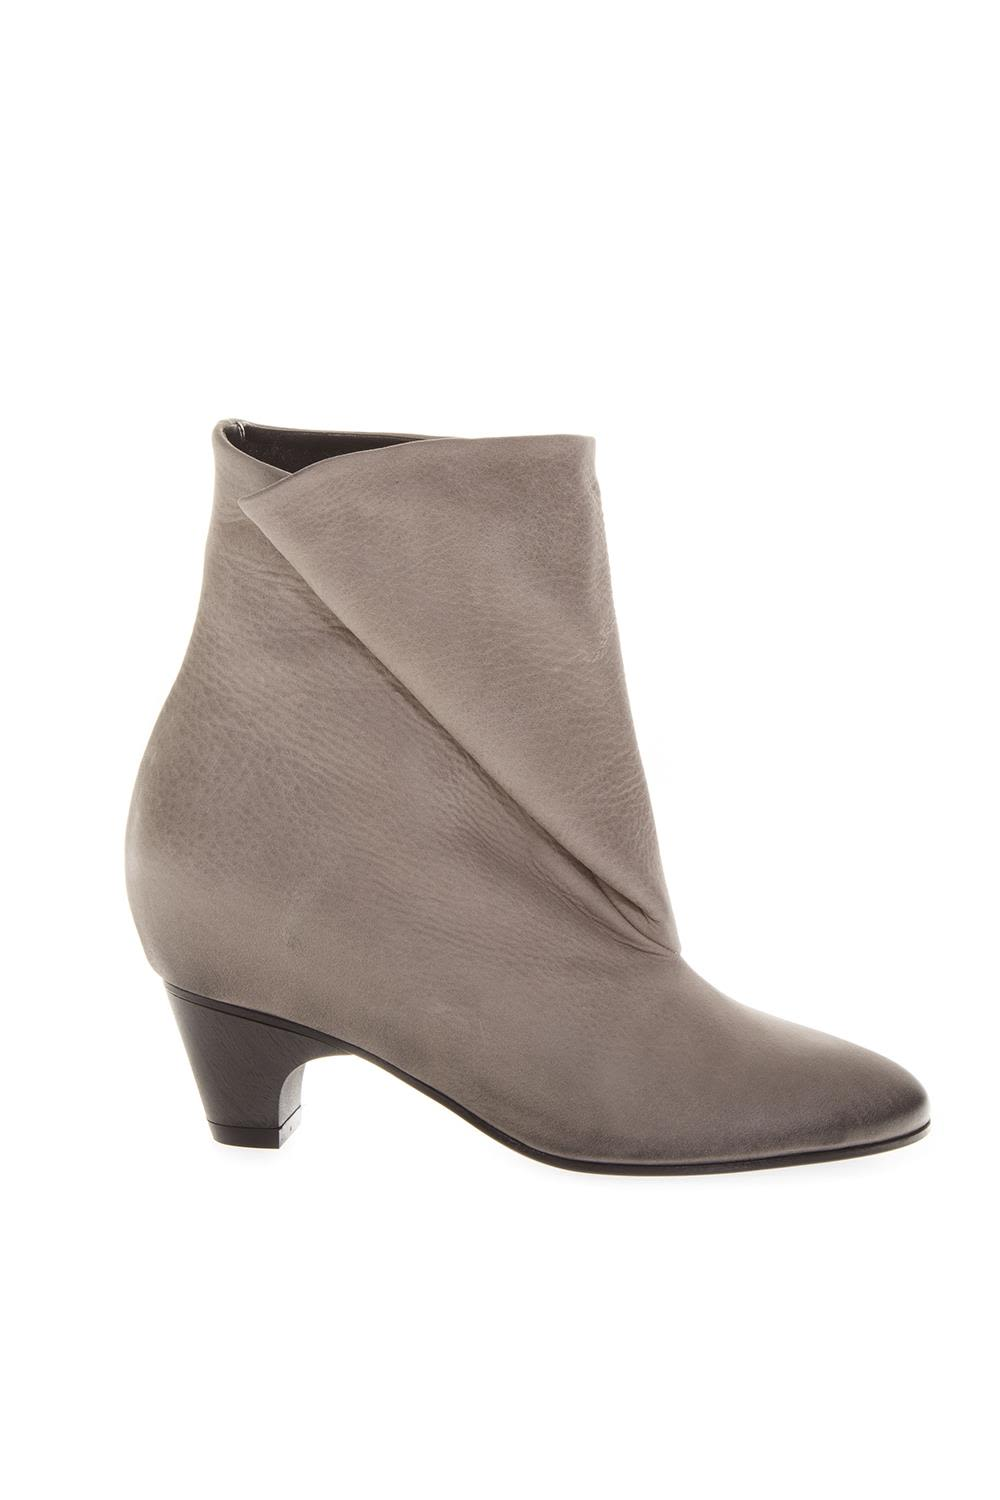 Marc Ellis Taupe Folded Leather Boots